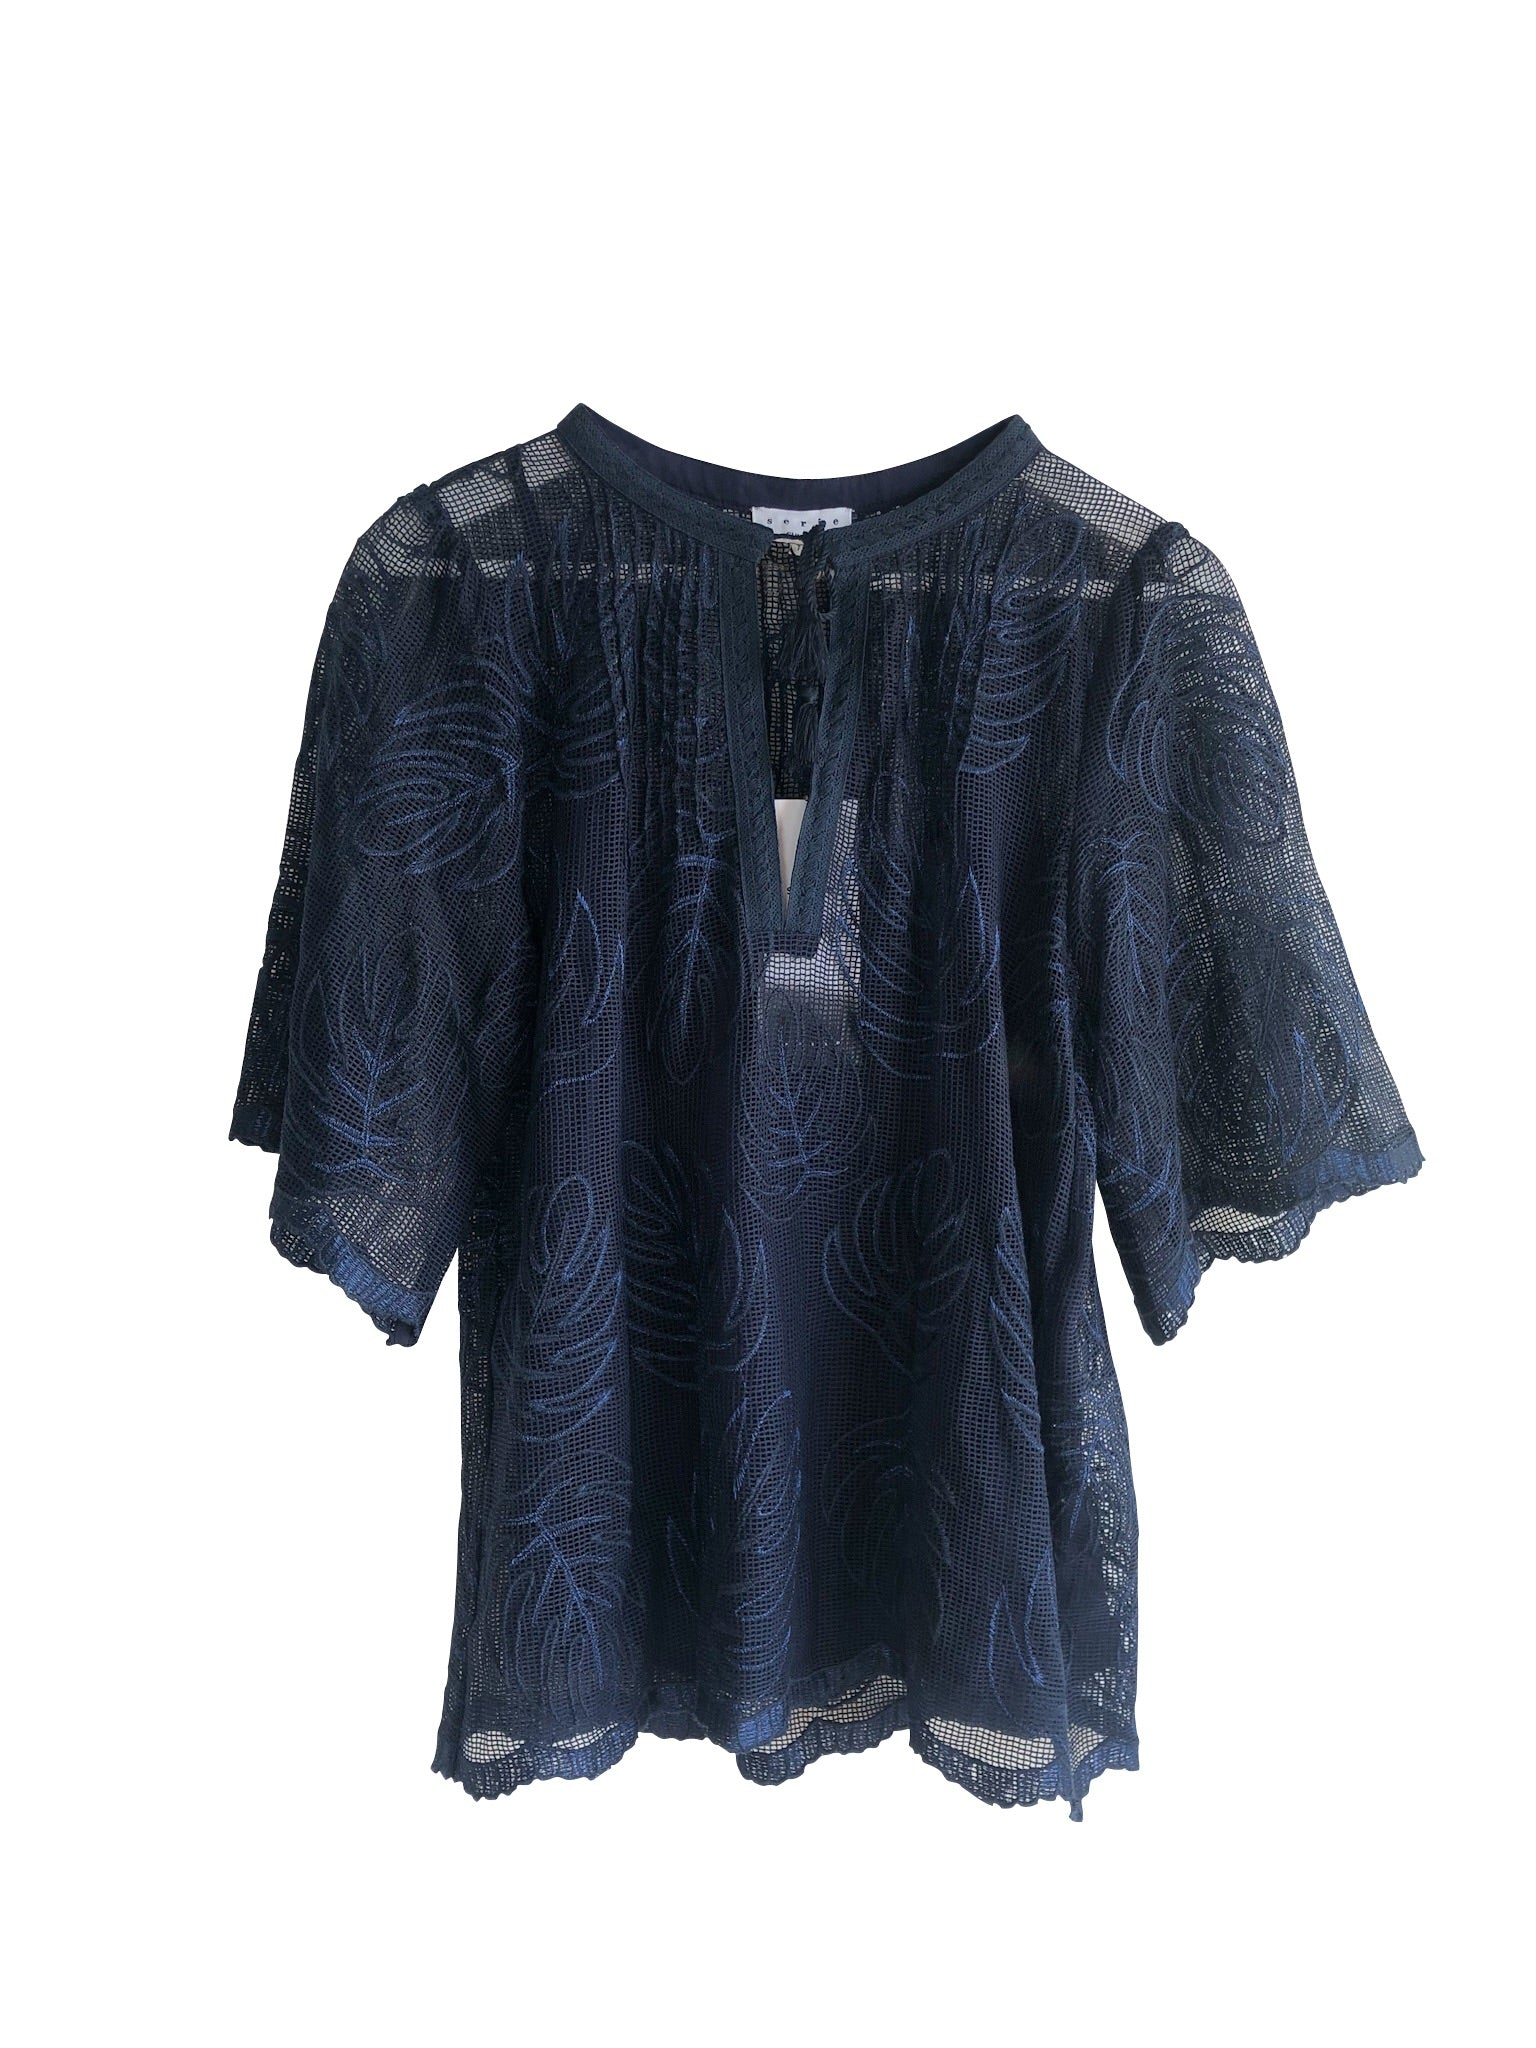 Suncoo Leaf Print Top - NWT